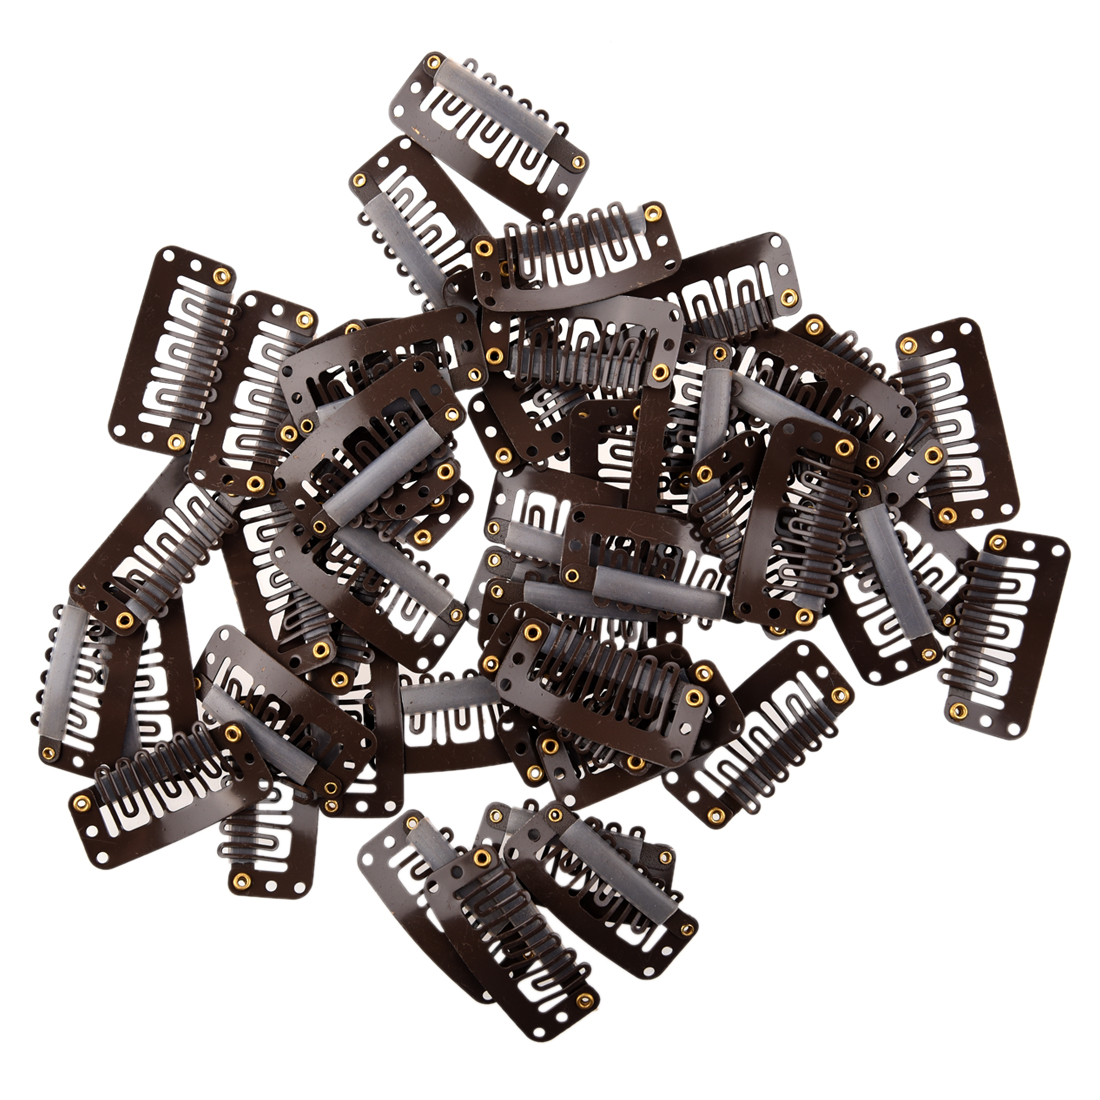 50pcs Brown Snap Clips U-shape Metal Clips for Hair Extensions DIY